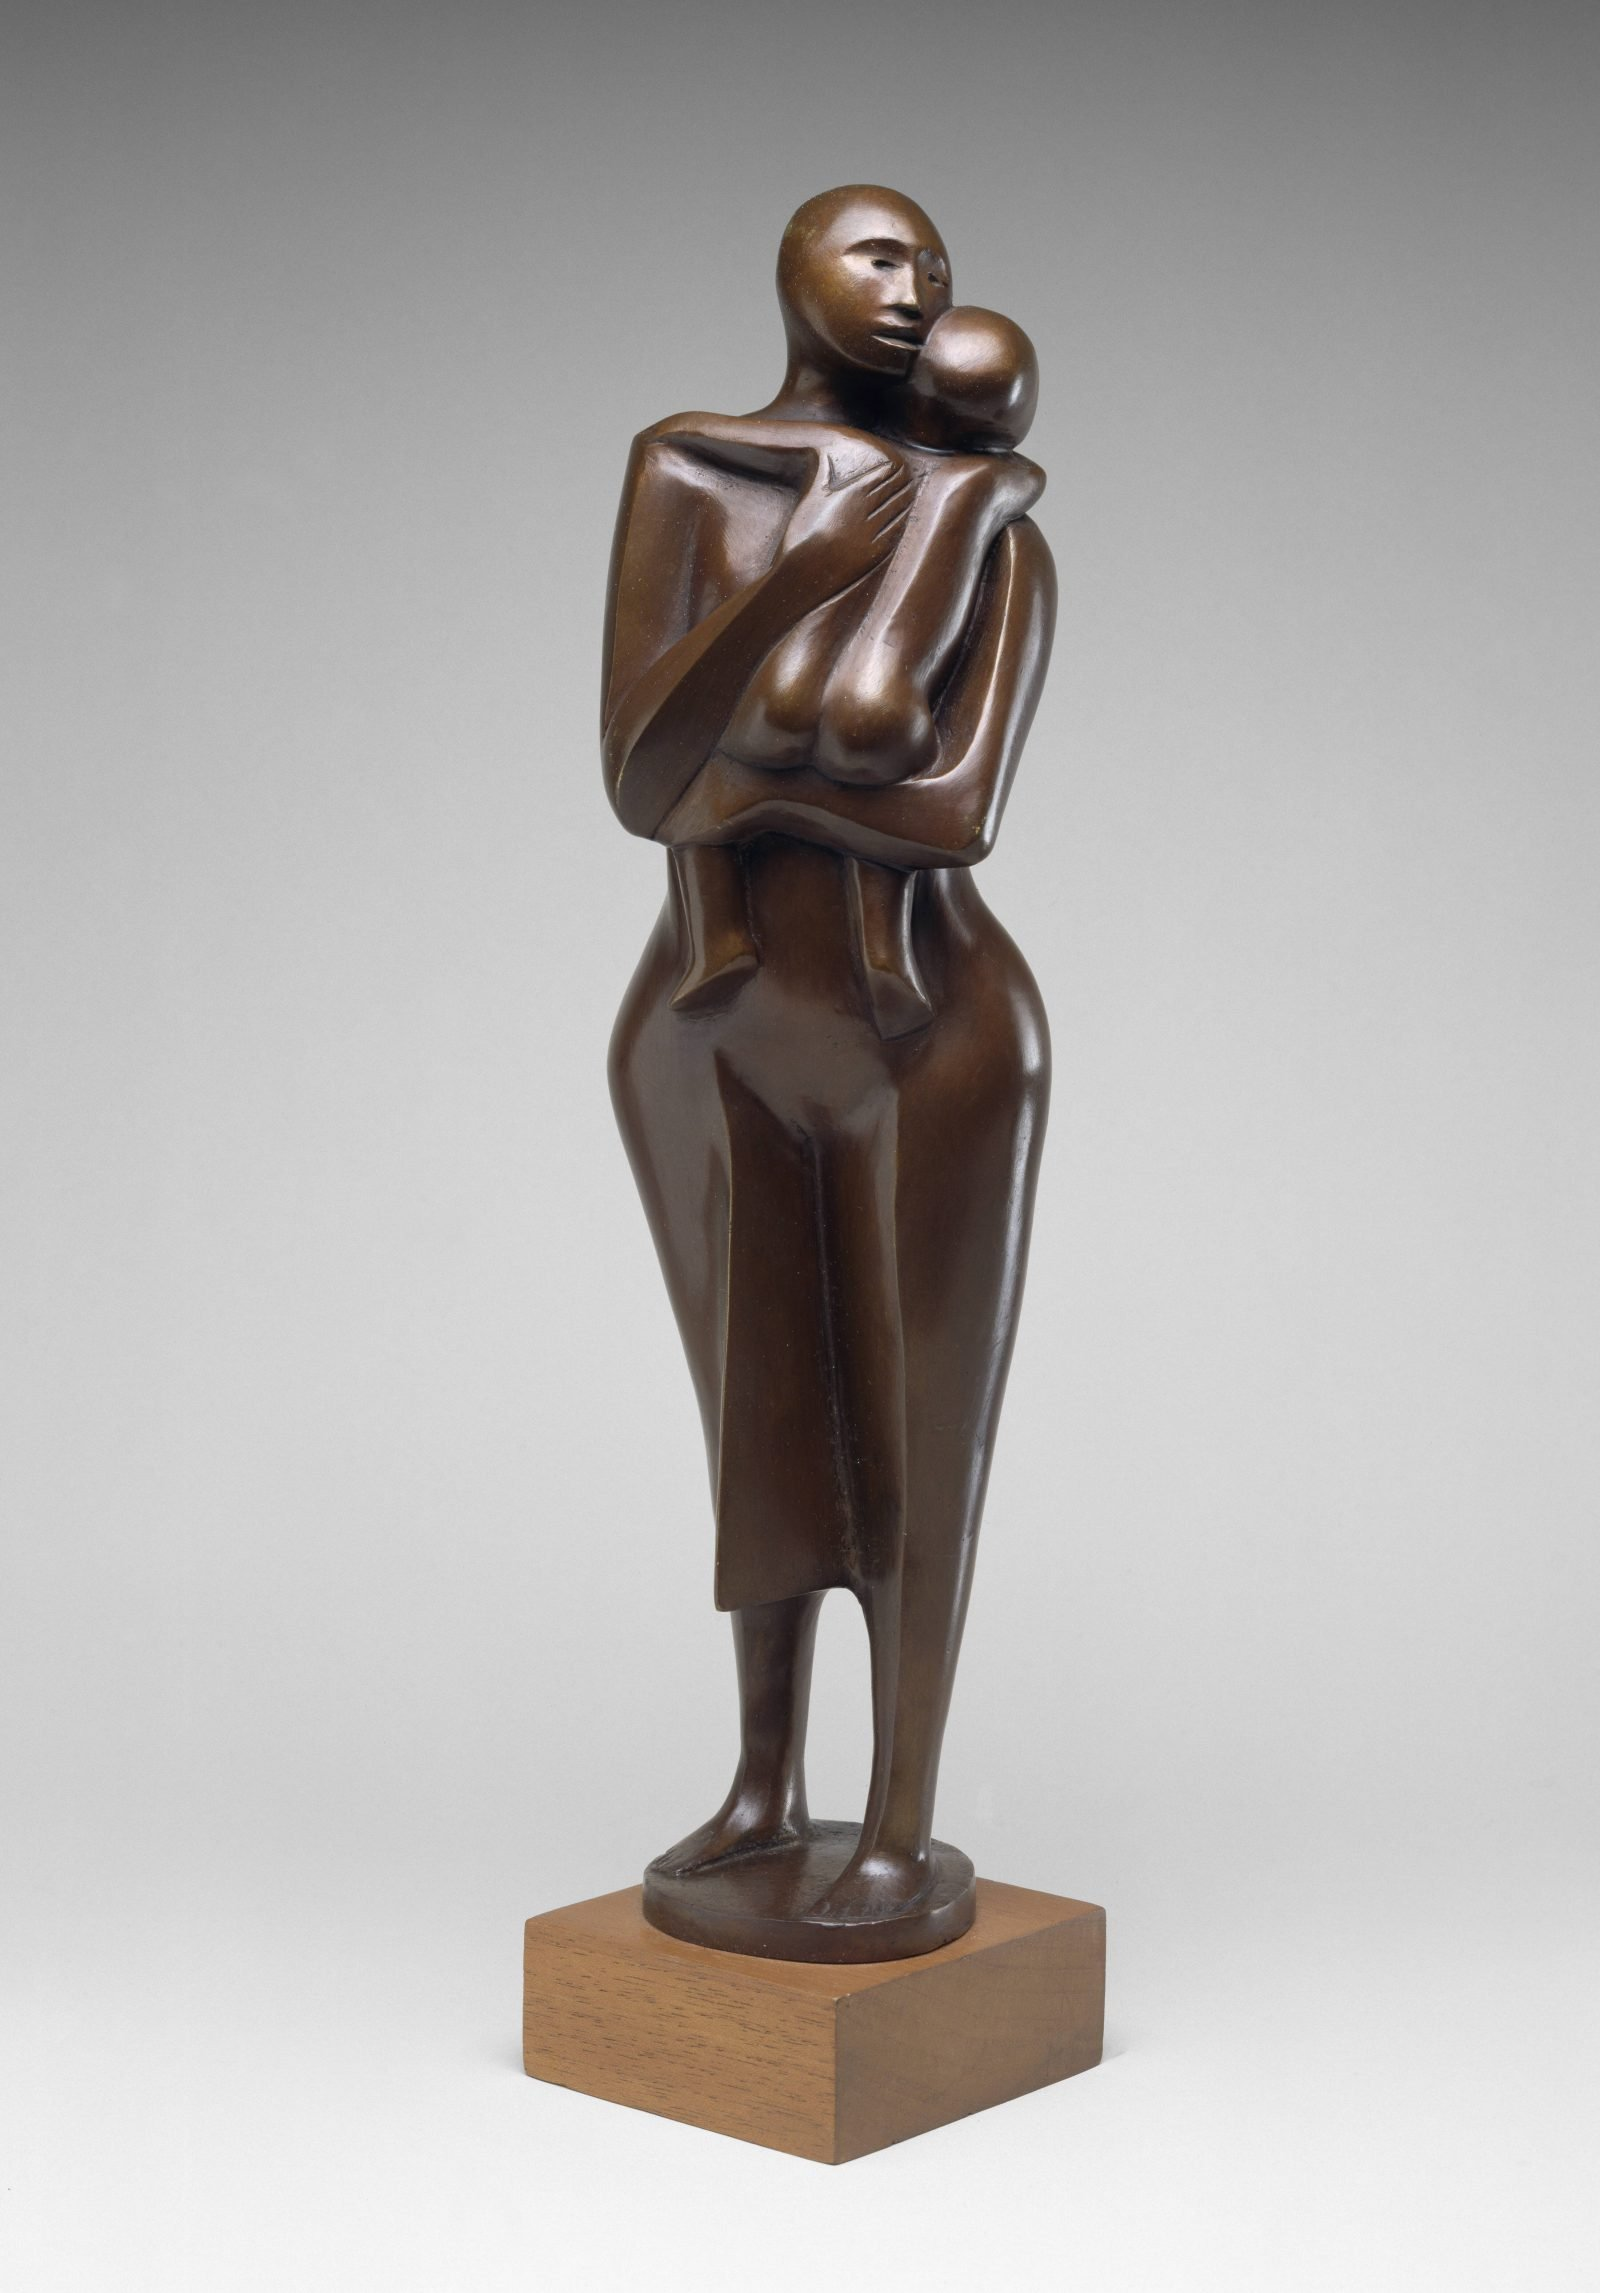 Elizabeth Catlett, Standing Mother and Child, 1978, bronze with copper alloy on wood base, the Museum of Fine Arts, Houston, Museum purchase funded by the African American Art Advisory Association. © 2021 Catlett Mora Family Trust / Licensed by VAGA at Artists Rights Society (ARS), New York